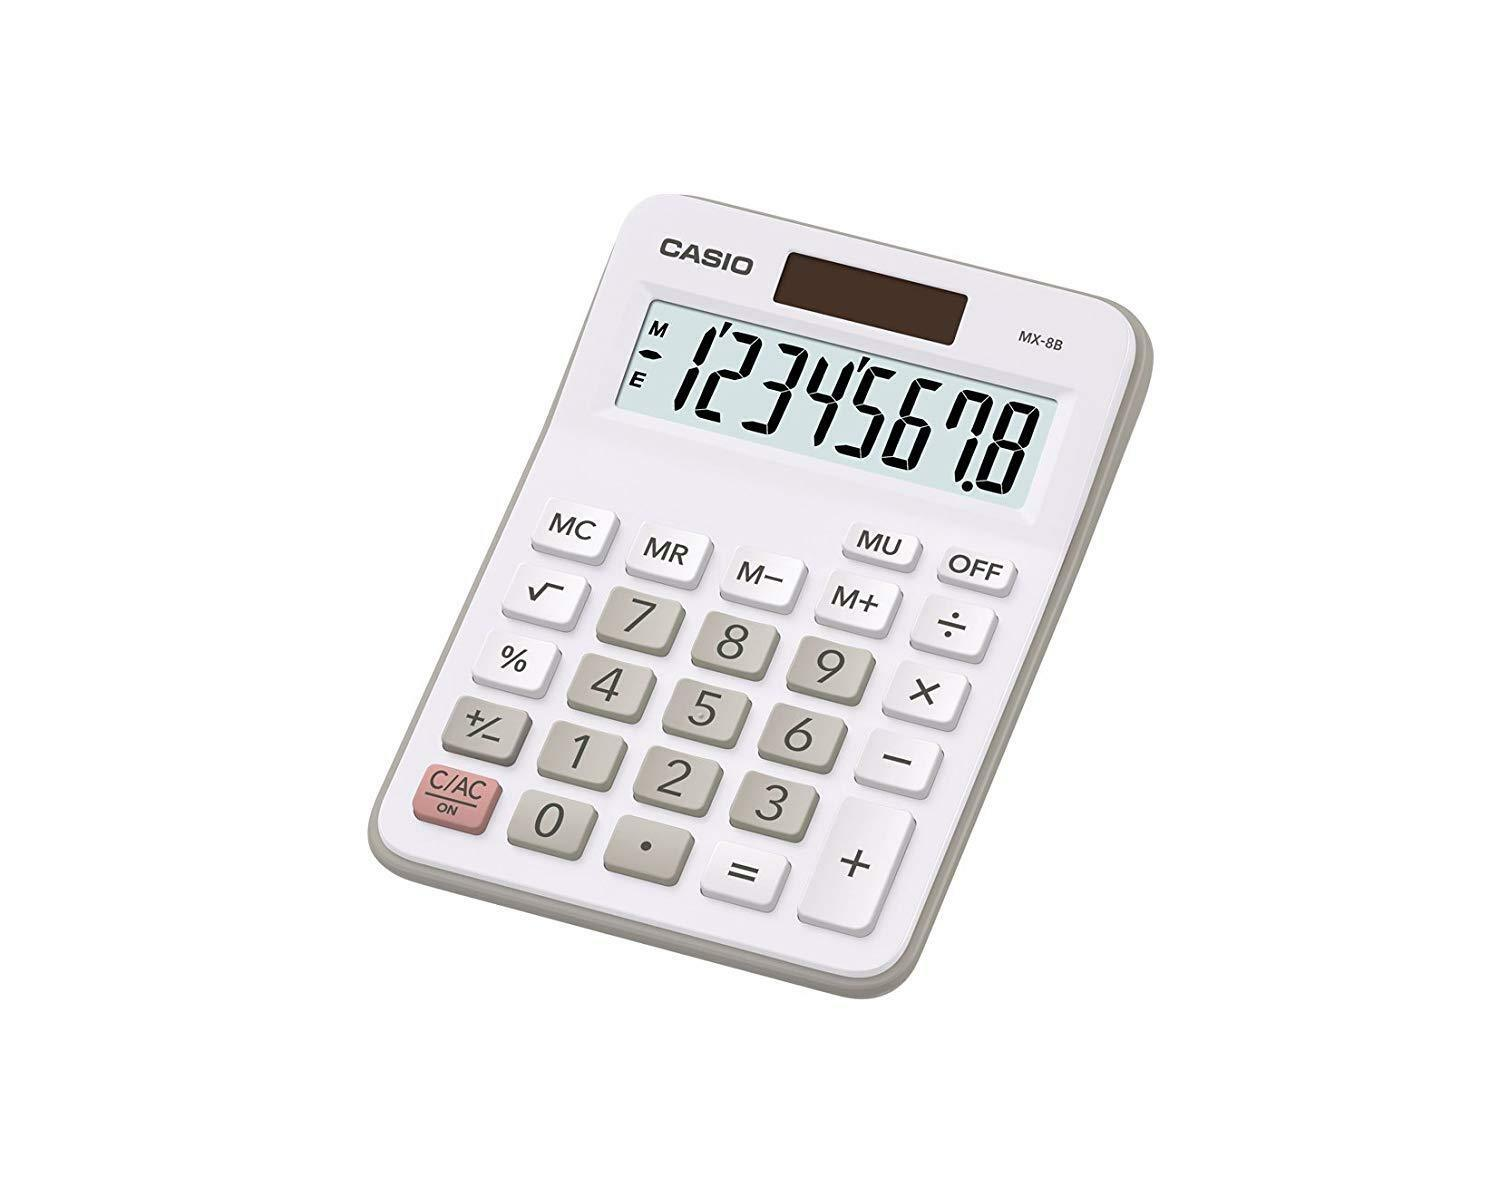 NEW Genuine Casio 8 Digits Solar & Battery Powered Desktop Calculator - White